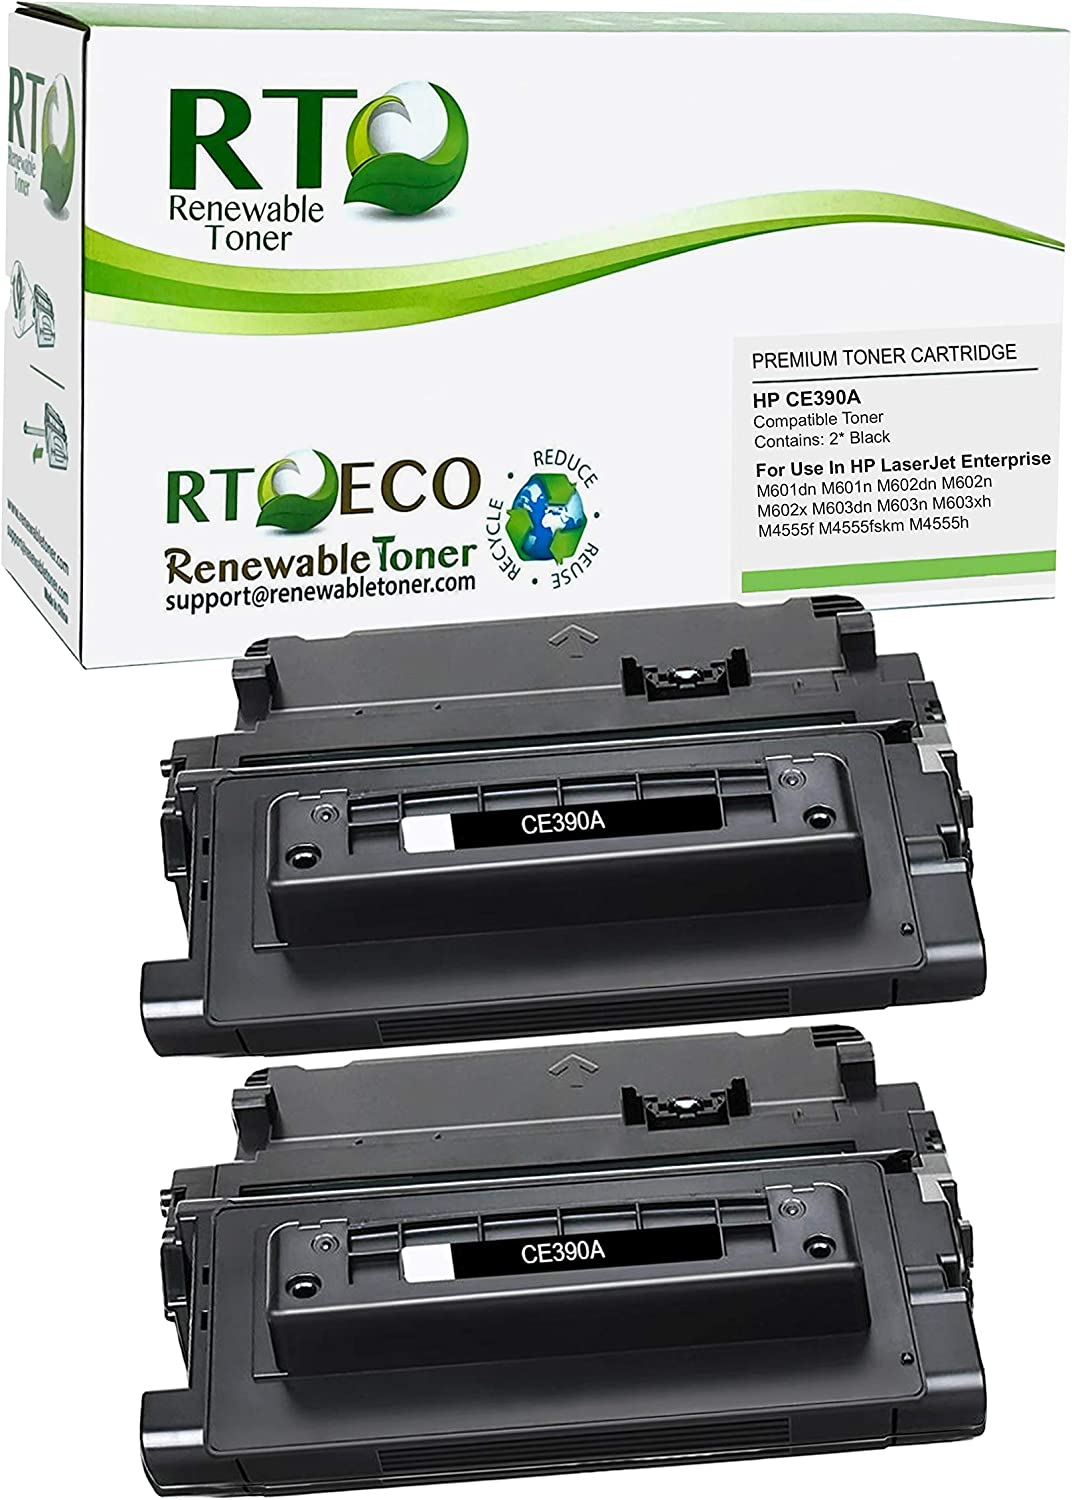 10000 Page Yield. M605 M606 Laser Printers United States Toner Brand MICR Check Printing Toner Cartridge for use in M604 81A MICR 2-Pack